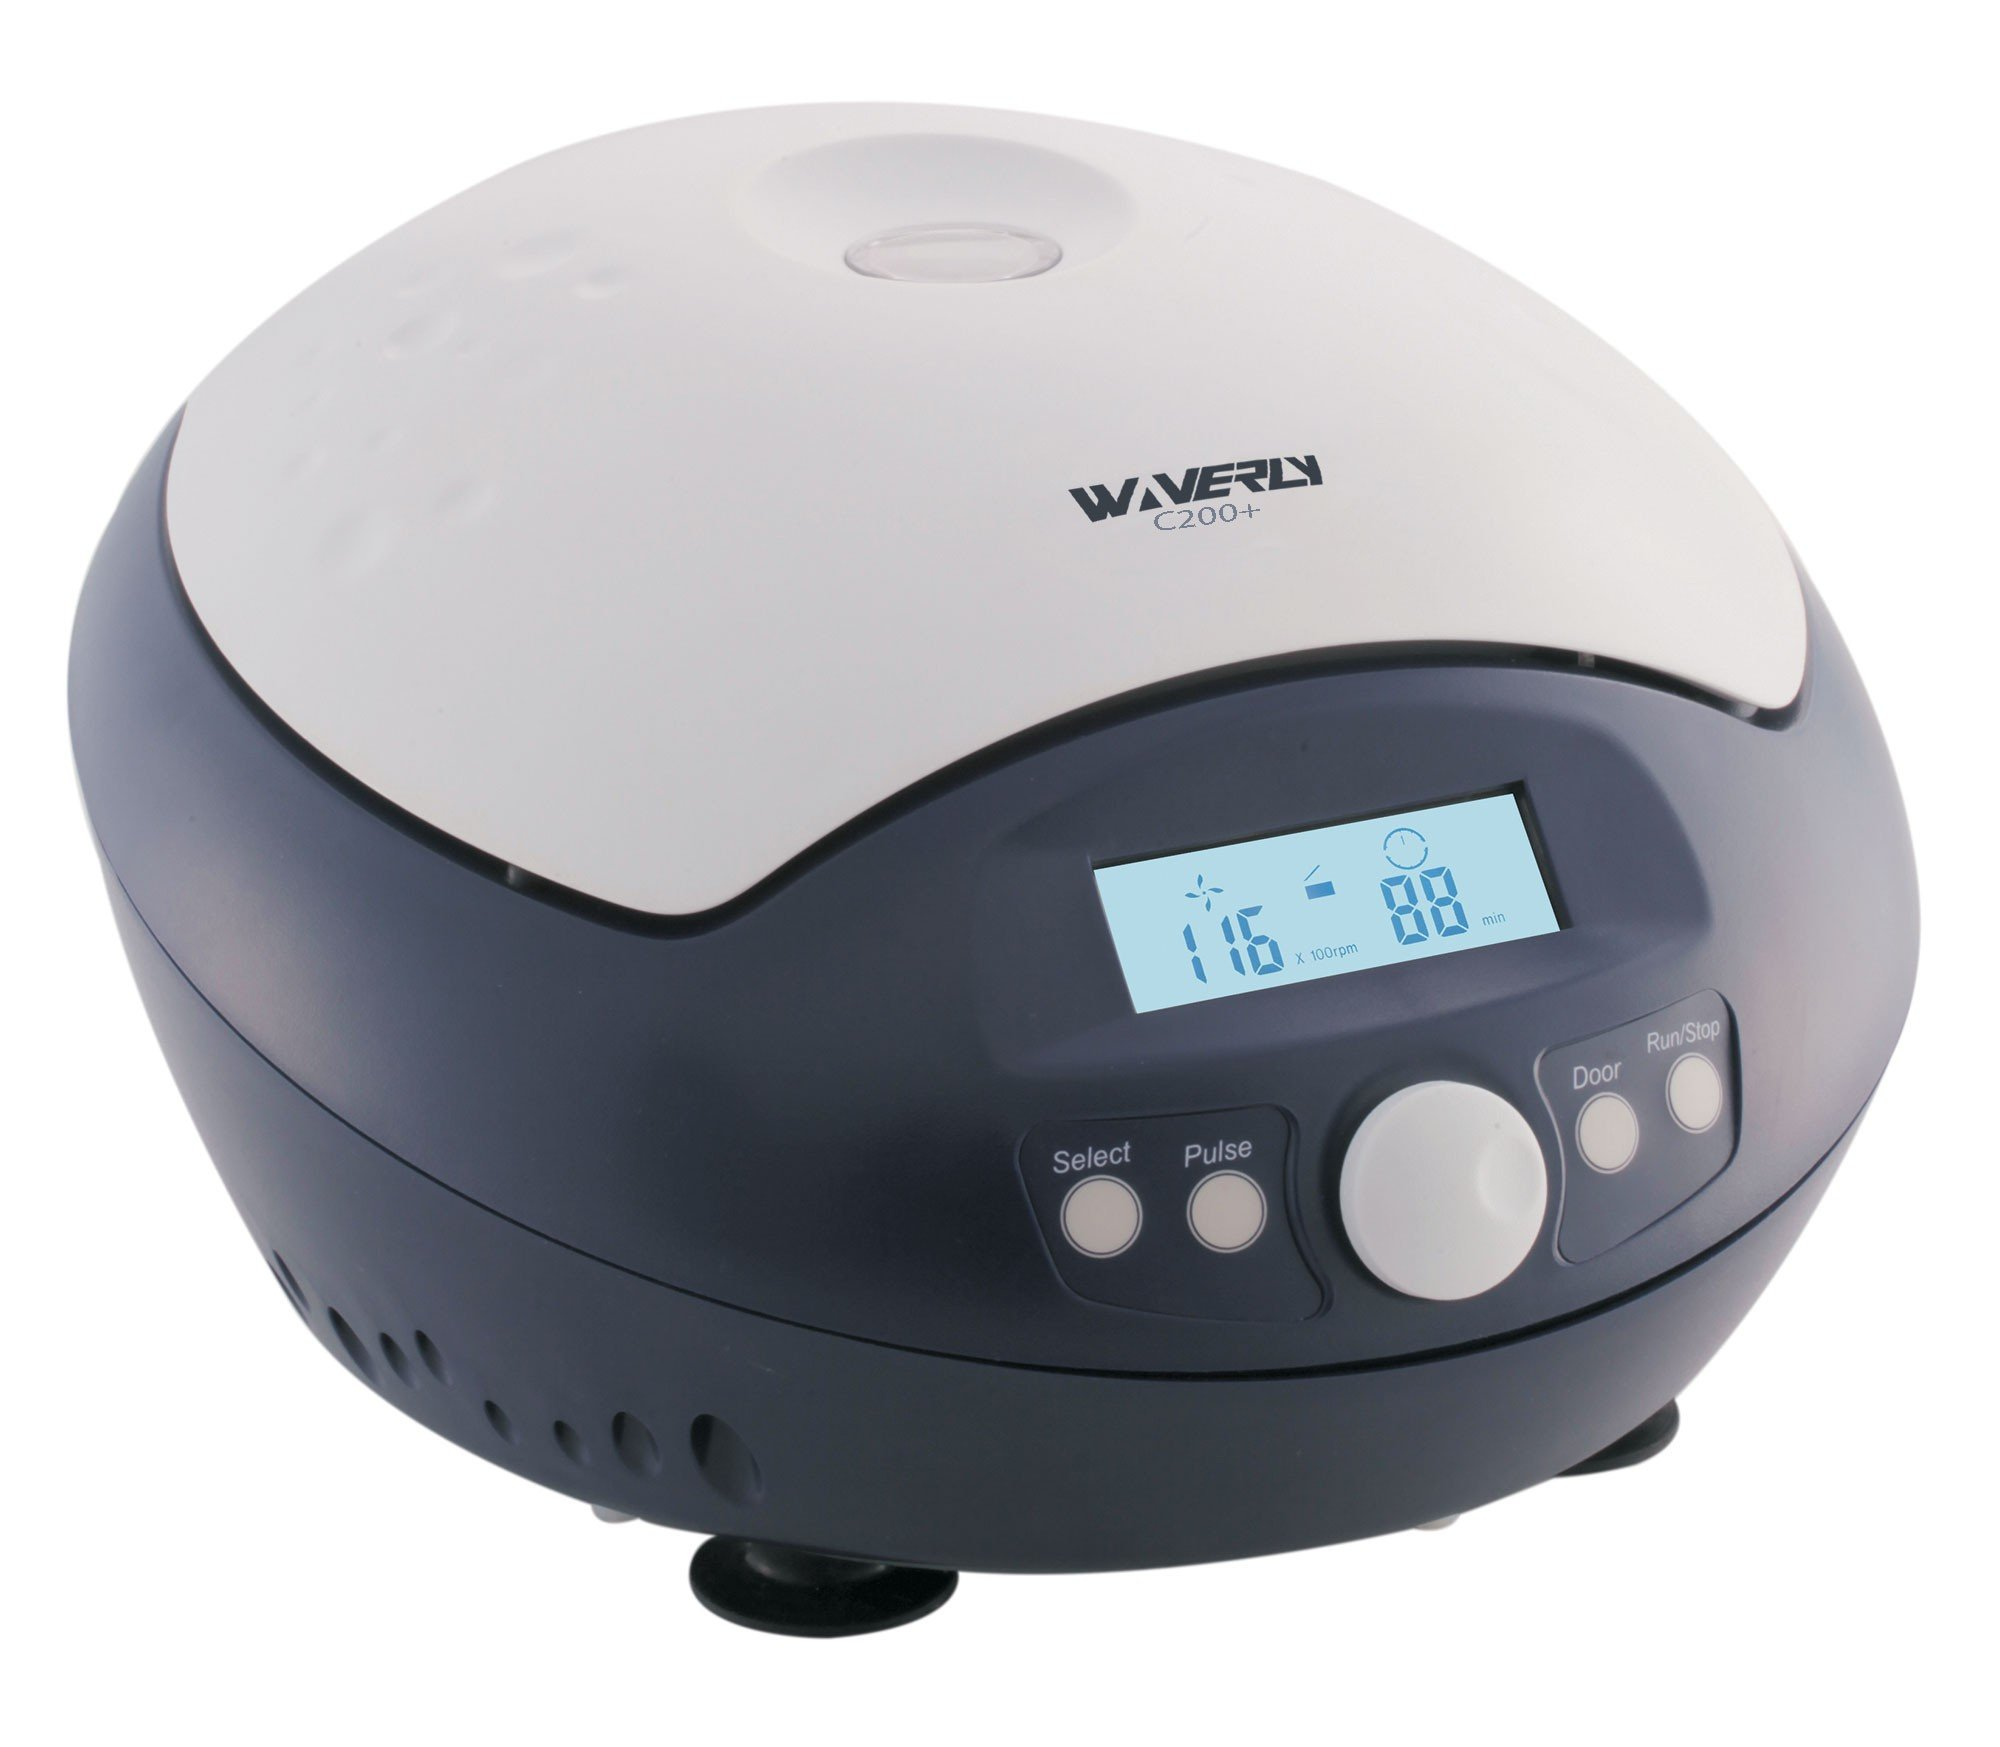 Waverly C200 High Speed Micro centrifuge, 110V, Includes Rotor for 12 x 1.5/2.0 mL Tubes by Waverly